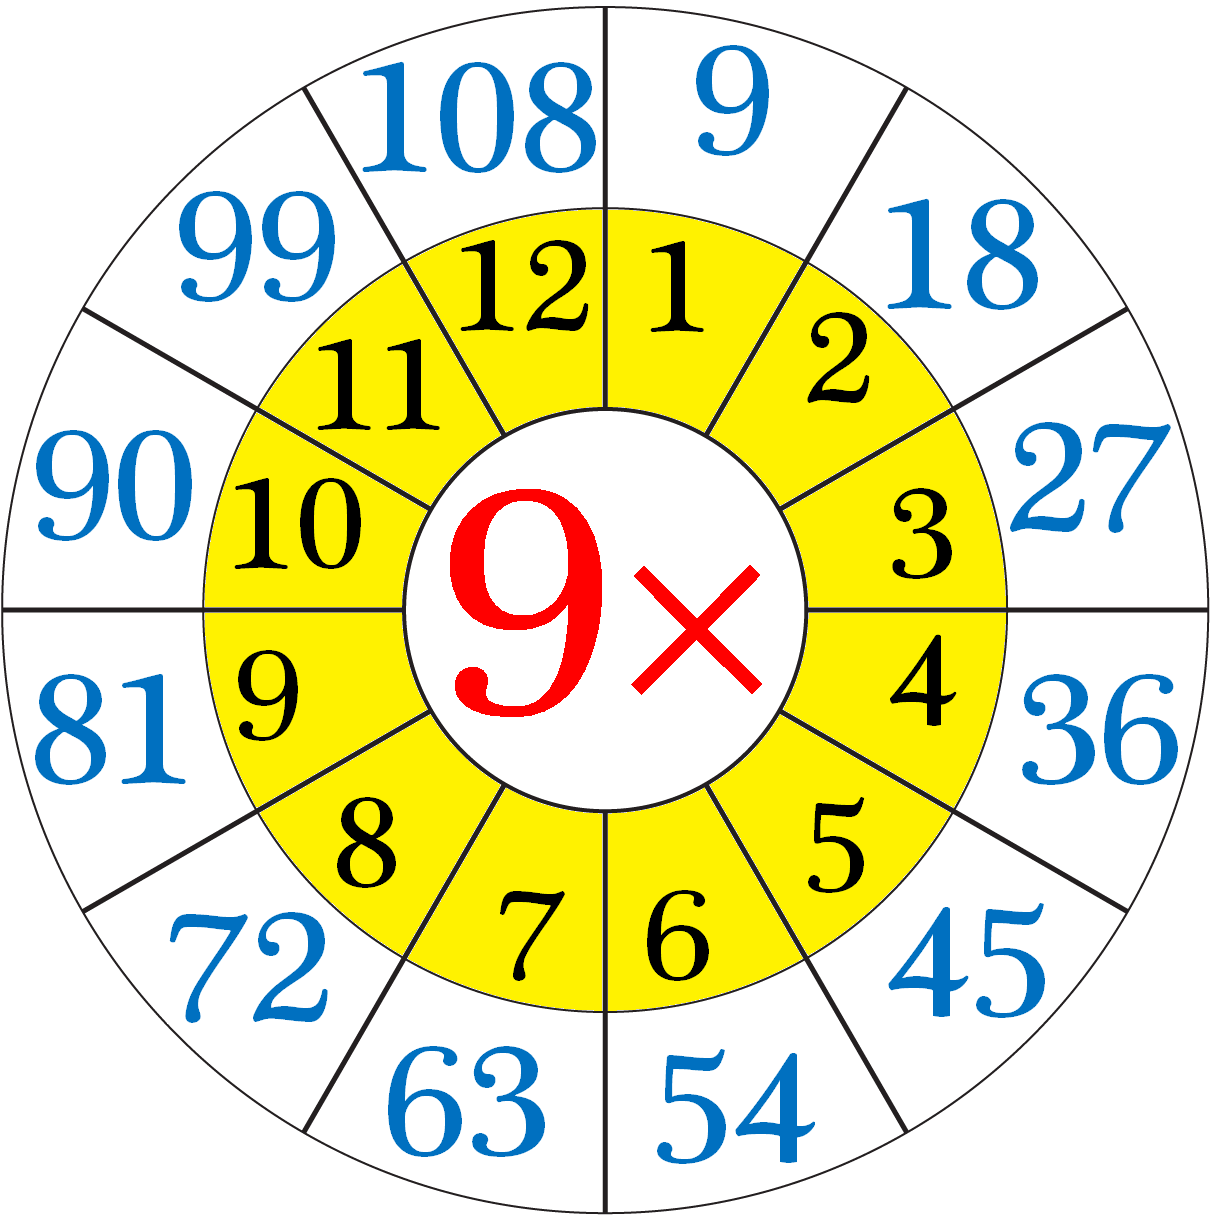 Multiplication Table Of 9 Con Immagini